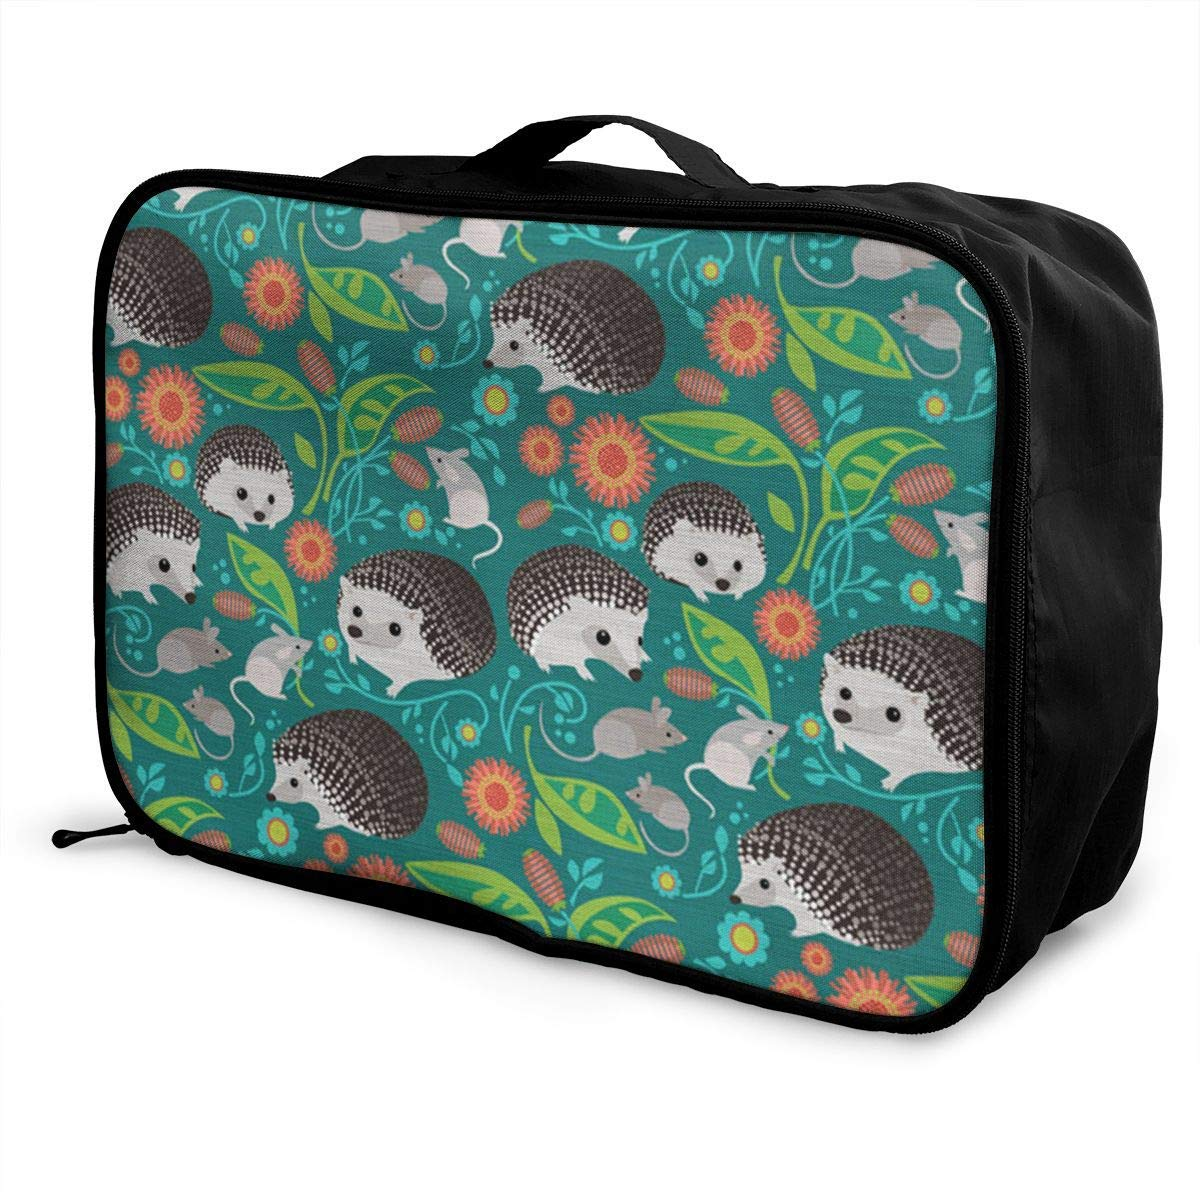 Portable Luggage Duffel Bag Woodland Hedgehogs Travel Bags Carry-on In Trolley Handle